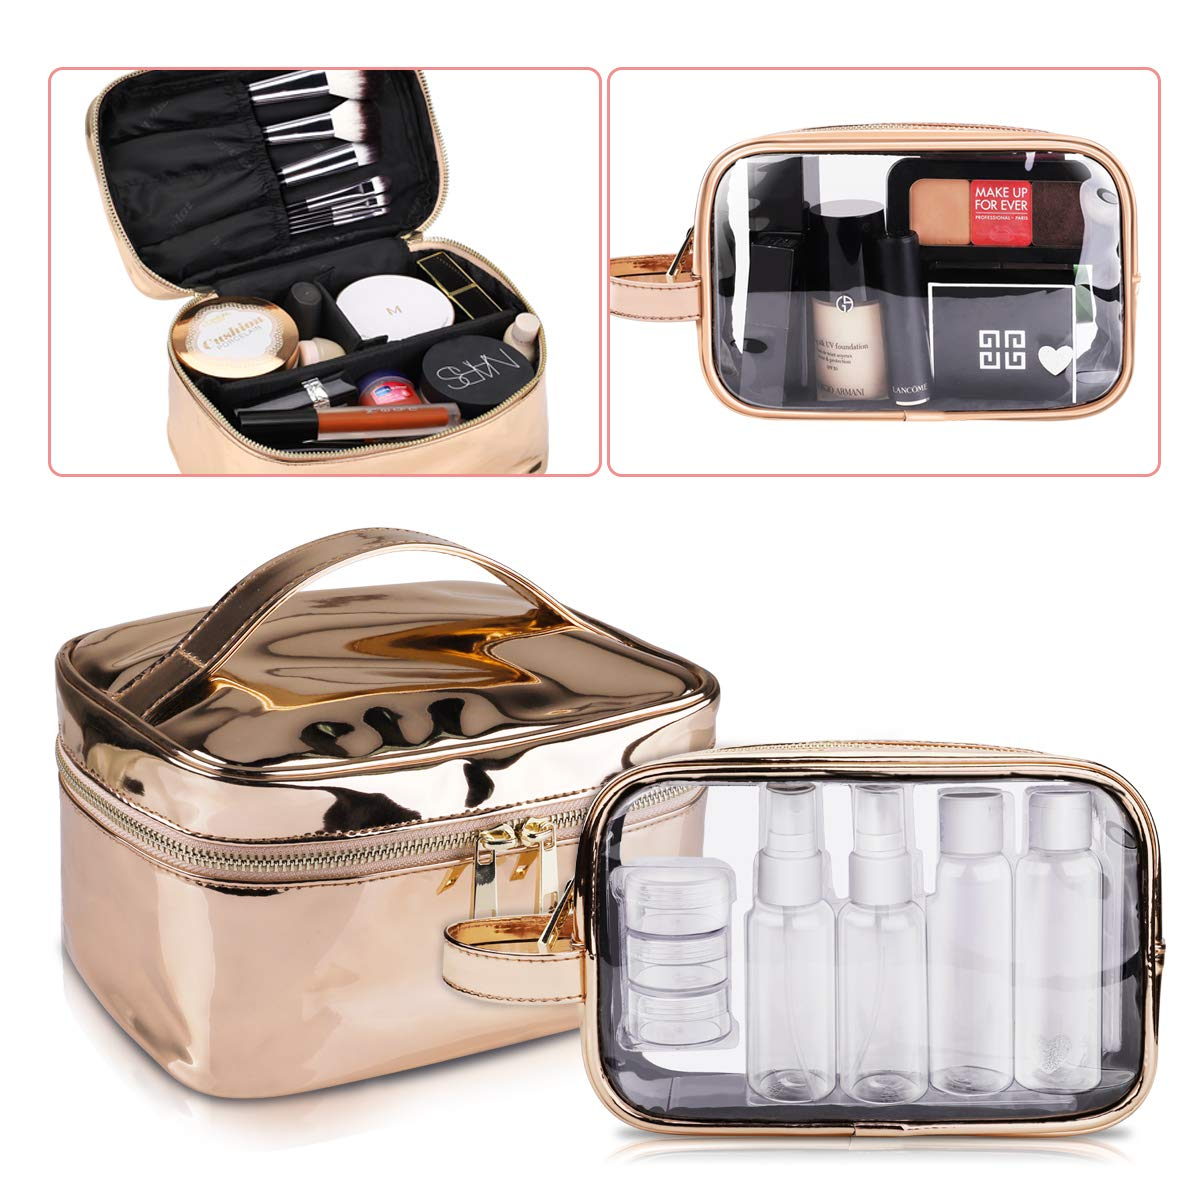 Large Cosmetic Bag & Clear Toiletry Bag Set, Morpilot Fashionable Portable Women Makeup Travel Bags with TSA Approved Toiletry Travel Bag Organizer for Packing Cosmetic Makeup Toiletry